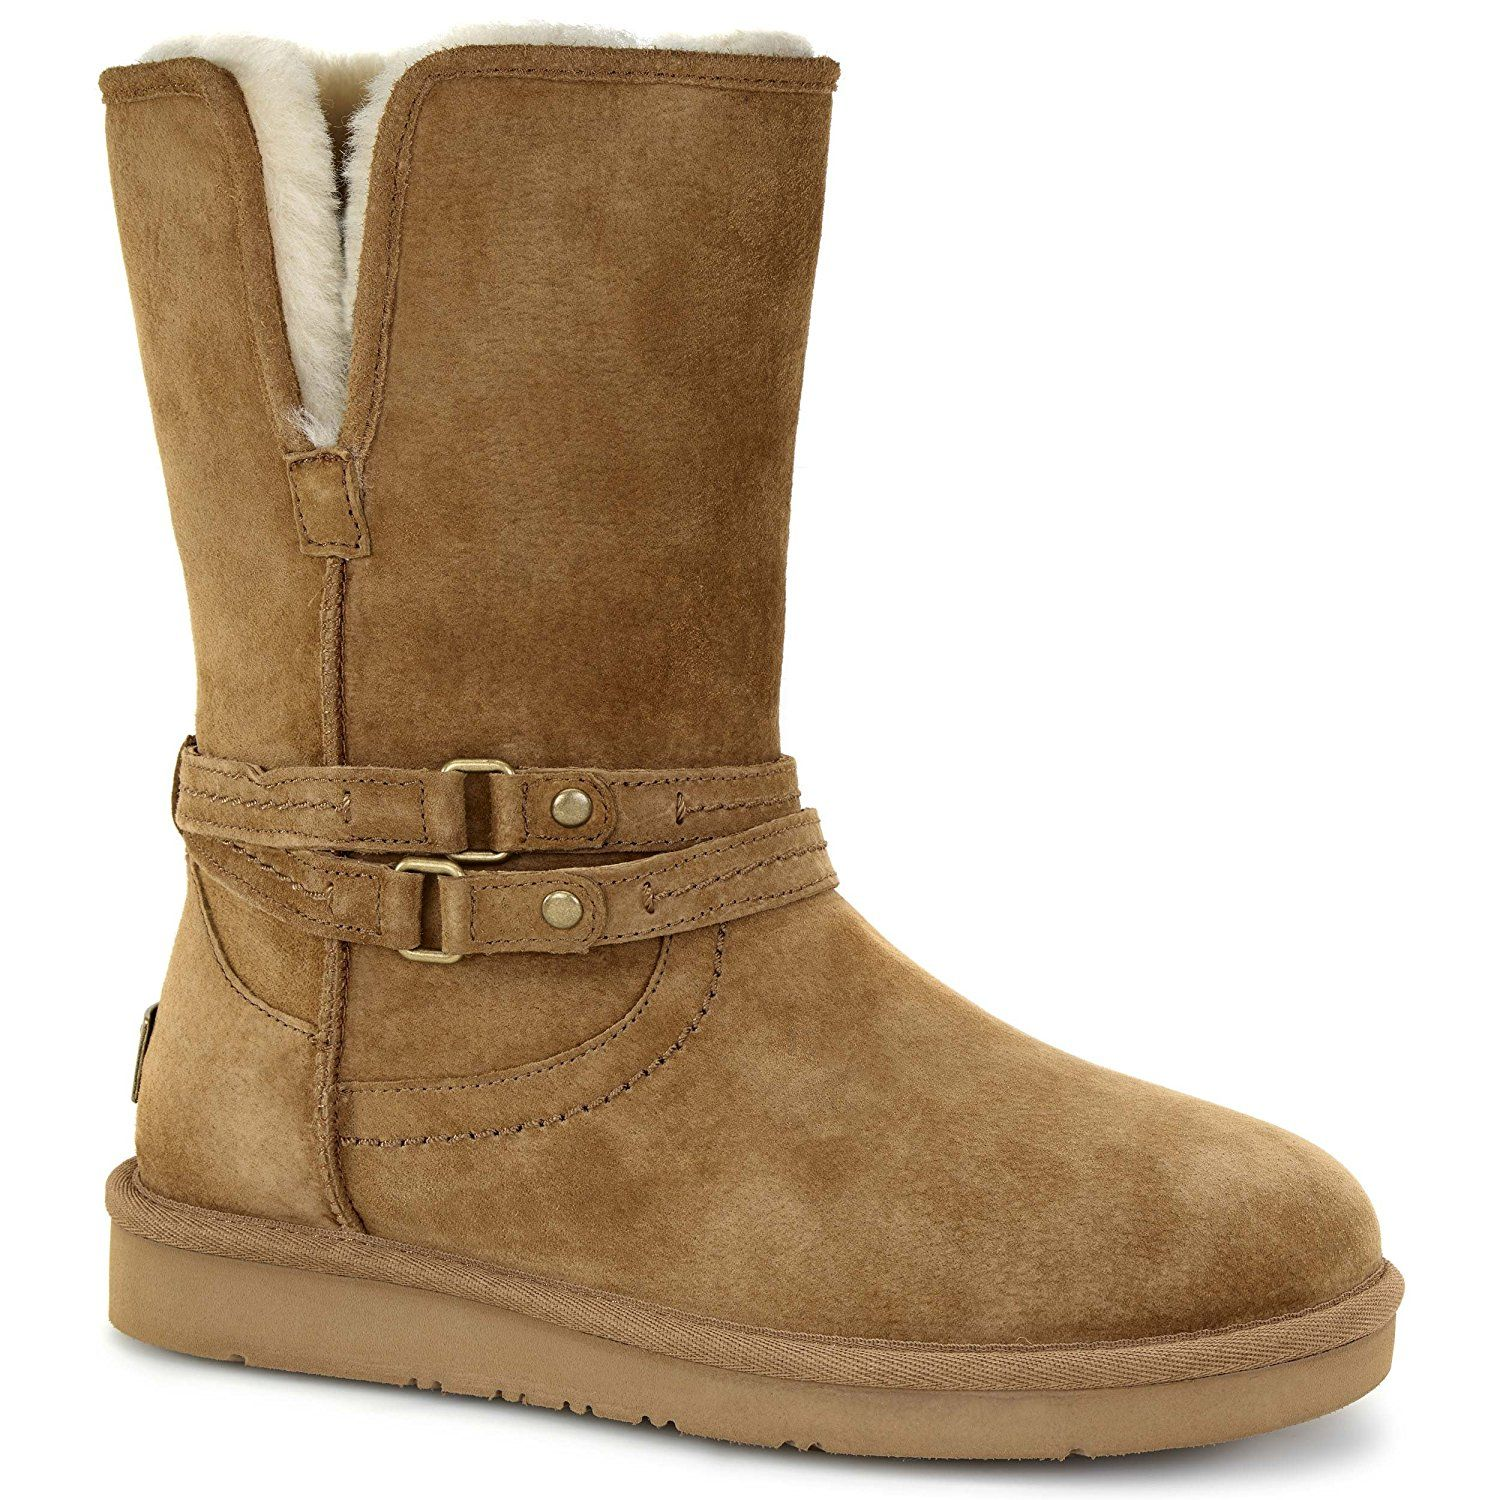 Ugg Australia Women S Palisade Boot This Is An Amazon Affiliate Link Read More Reviews Of The Product By Shearling Boots Woman Womens Boots Boot Shoes Women